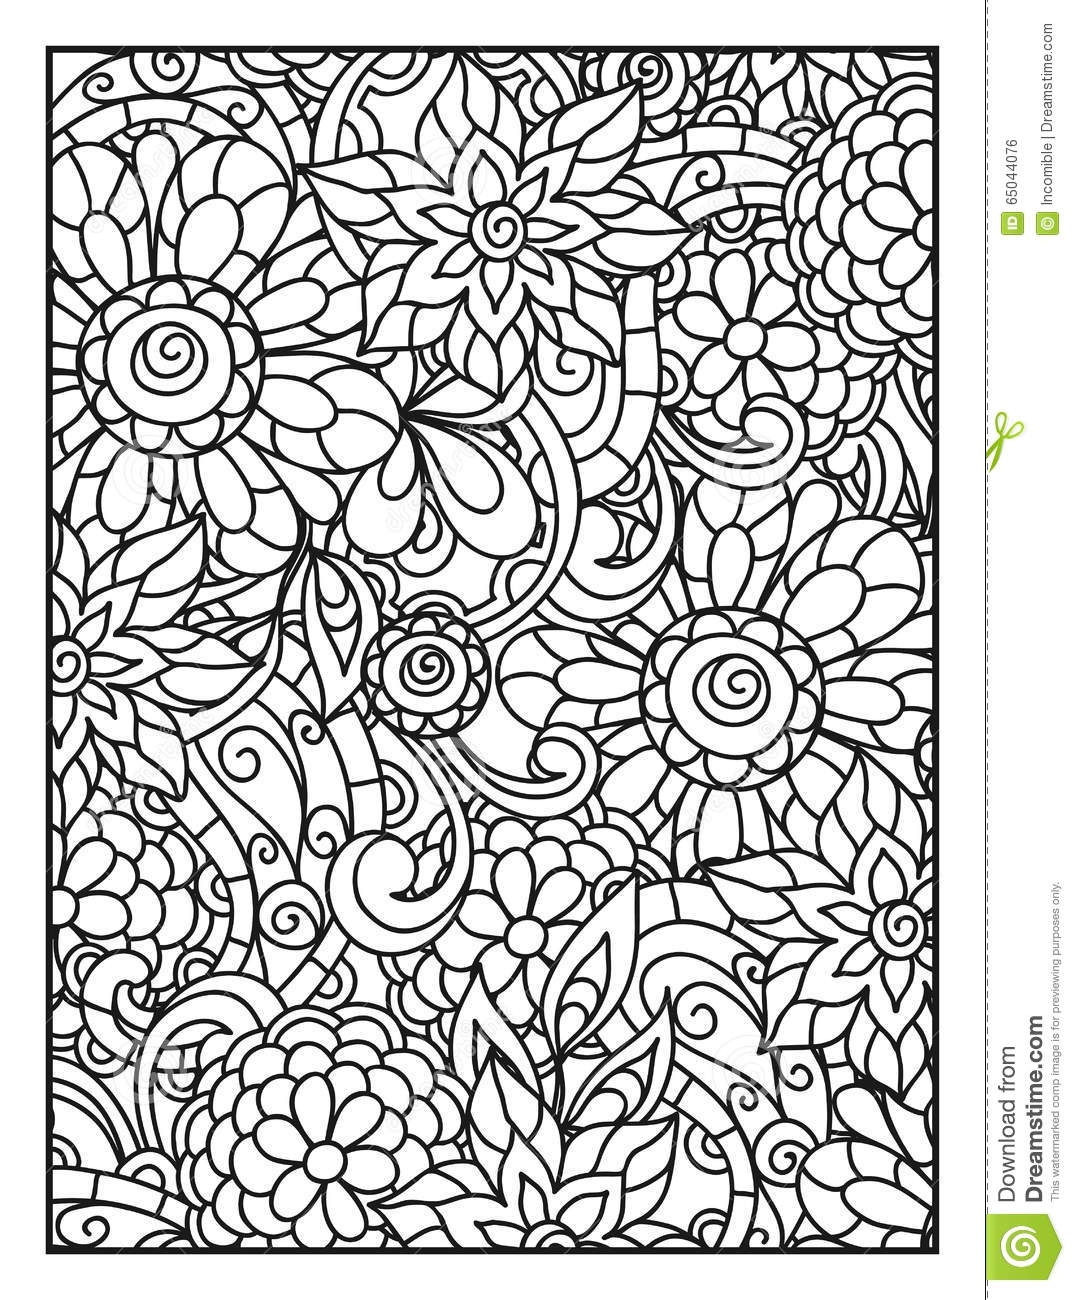 downloadable adult coloring pages - stock illustration background line flowers adult coloring page printing drawing image